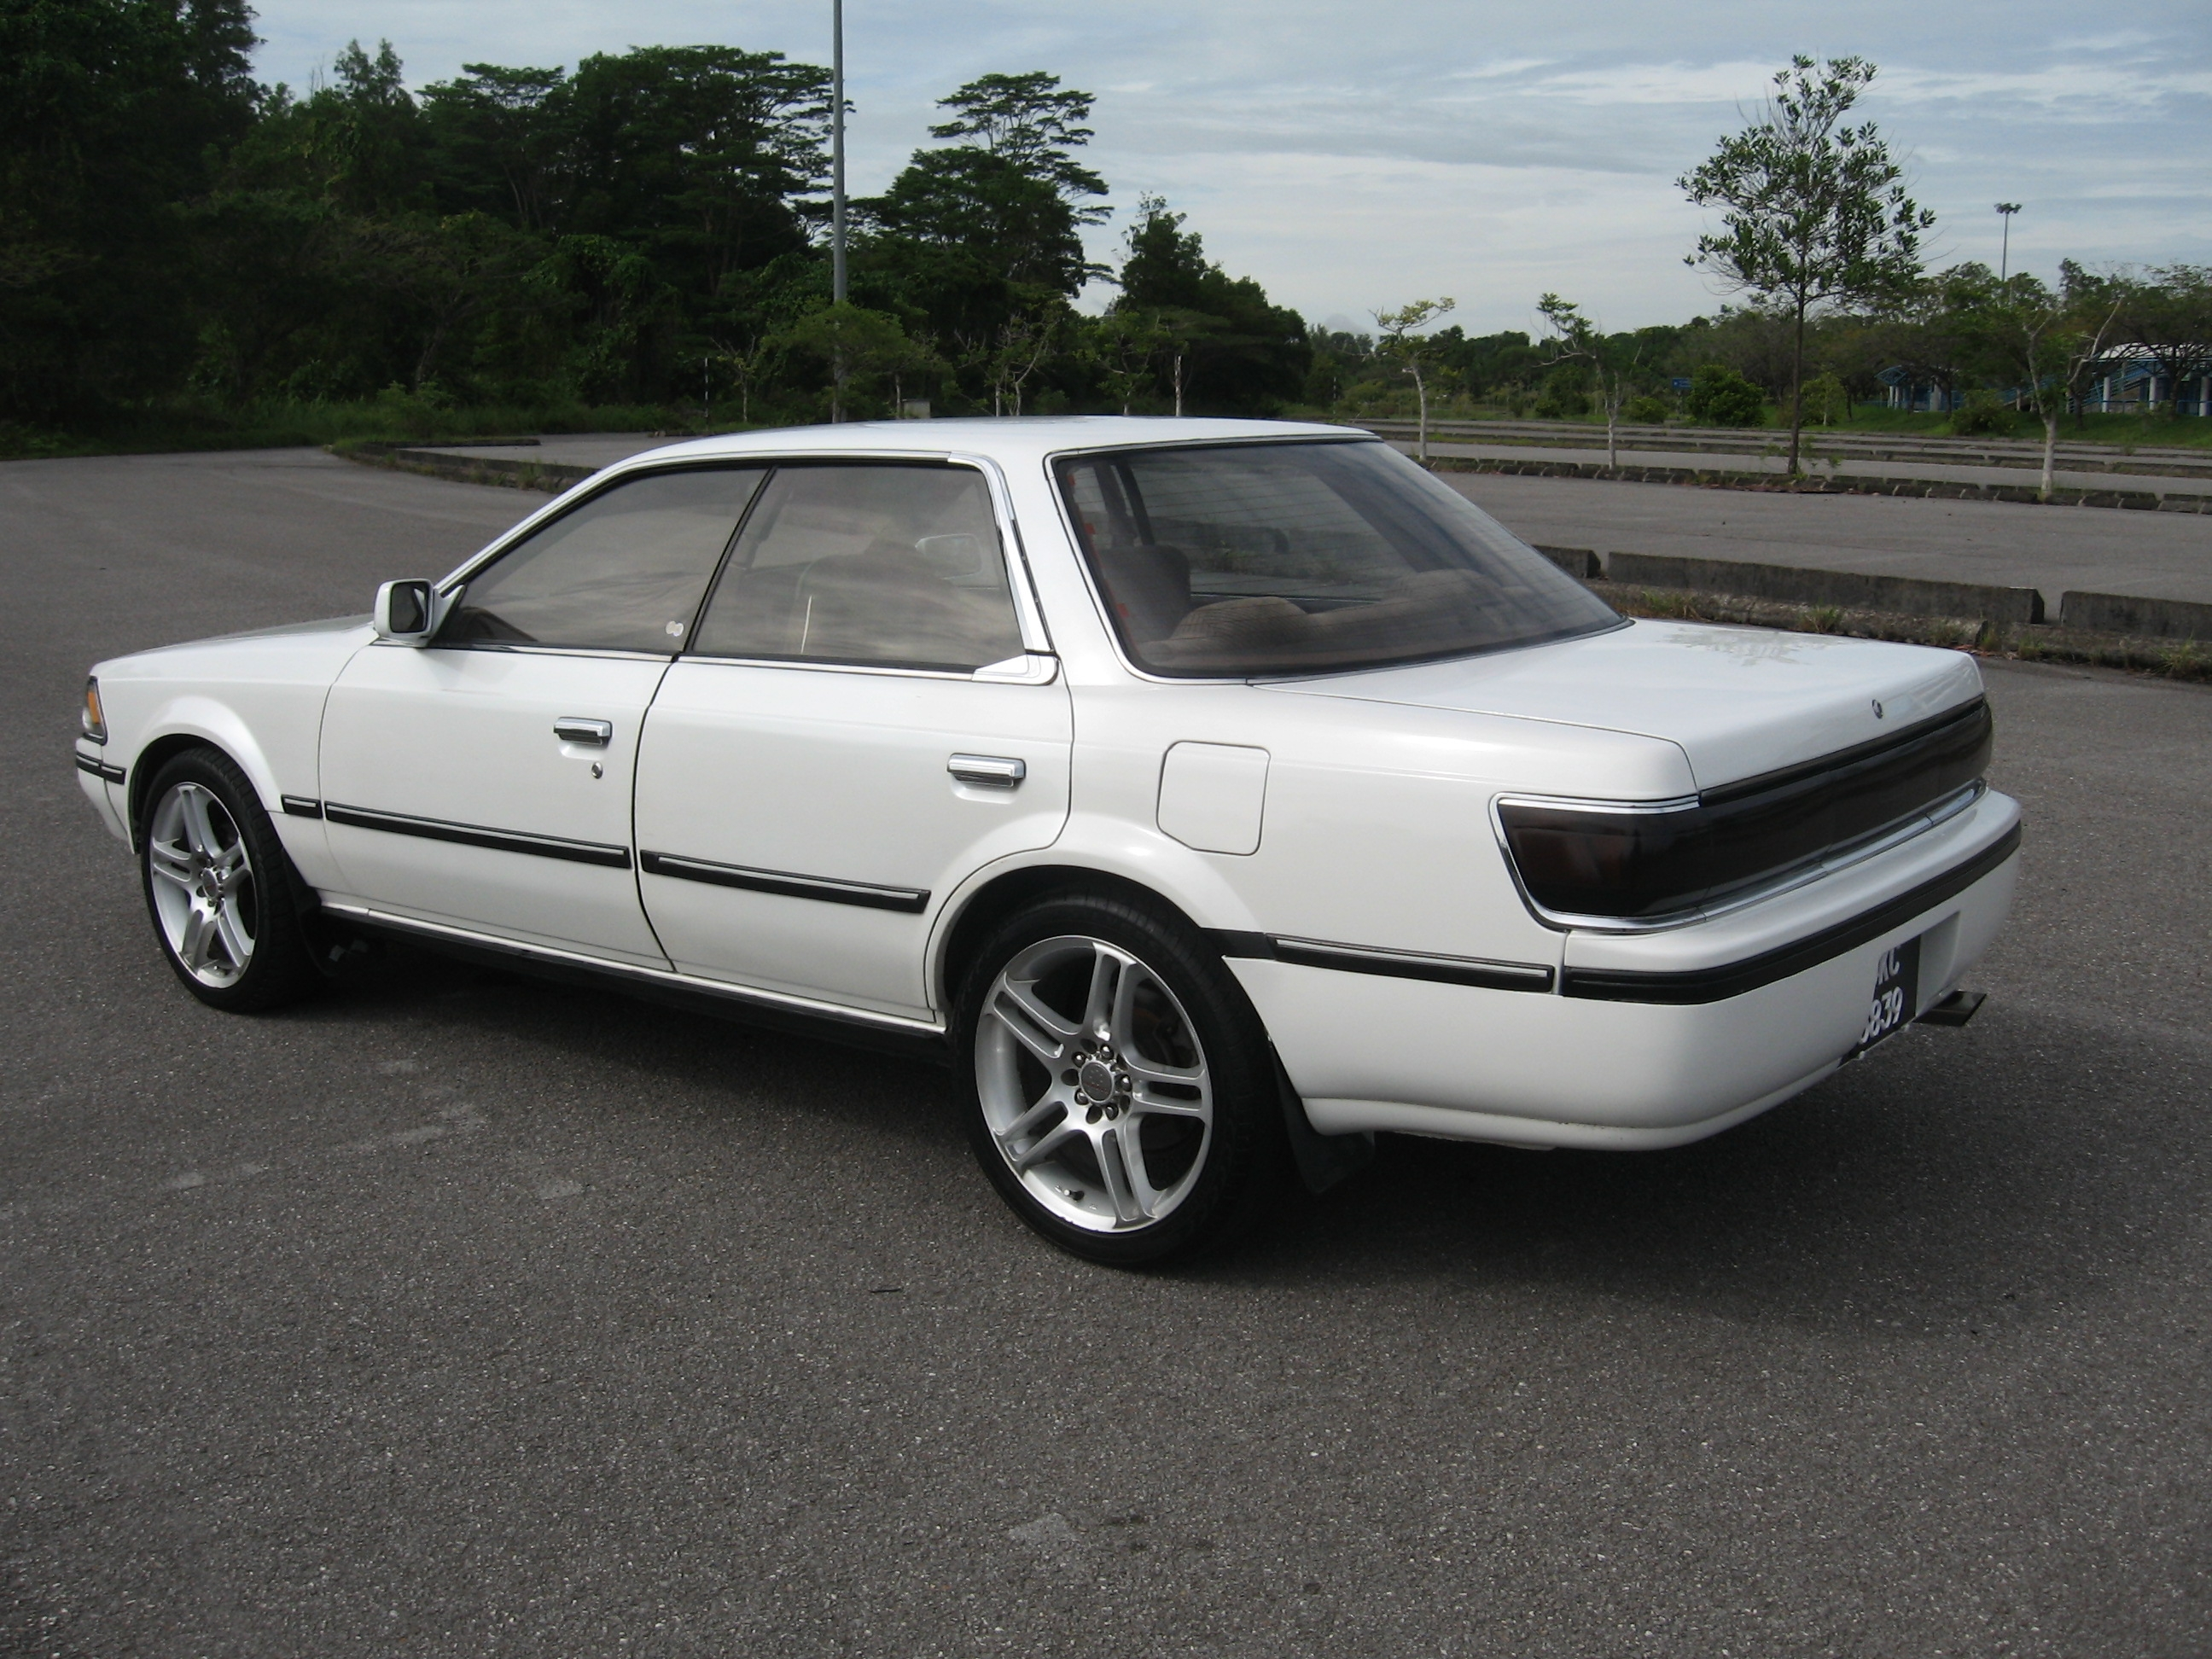 Another 701222-13-5077 1988 Toyota Carina post... - 14622996